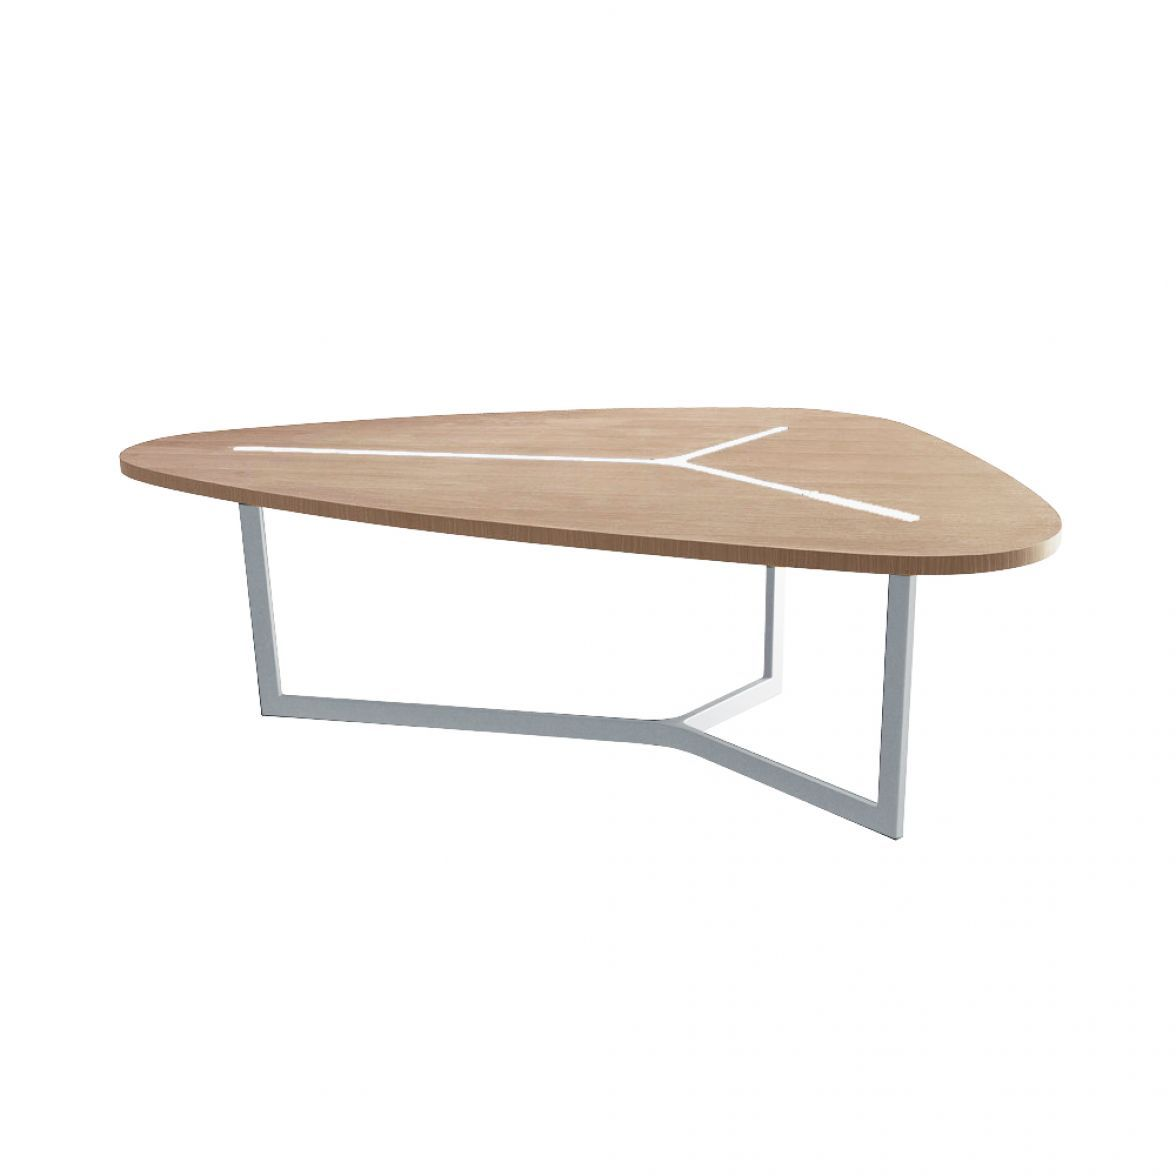 Seven table